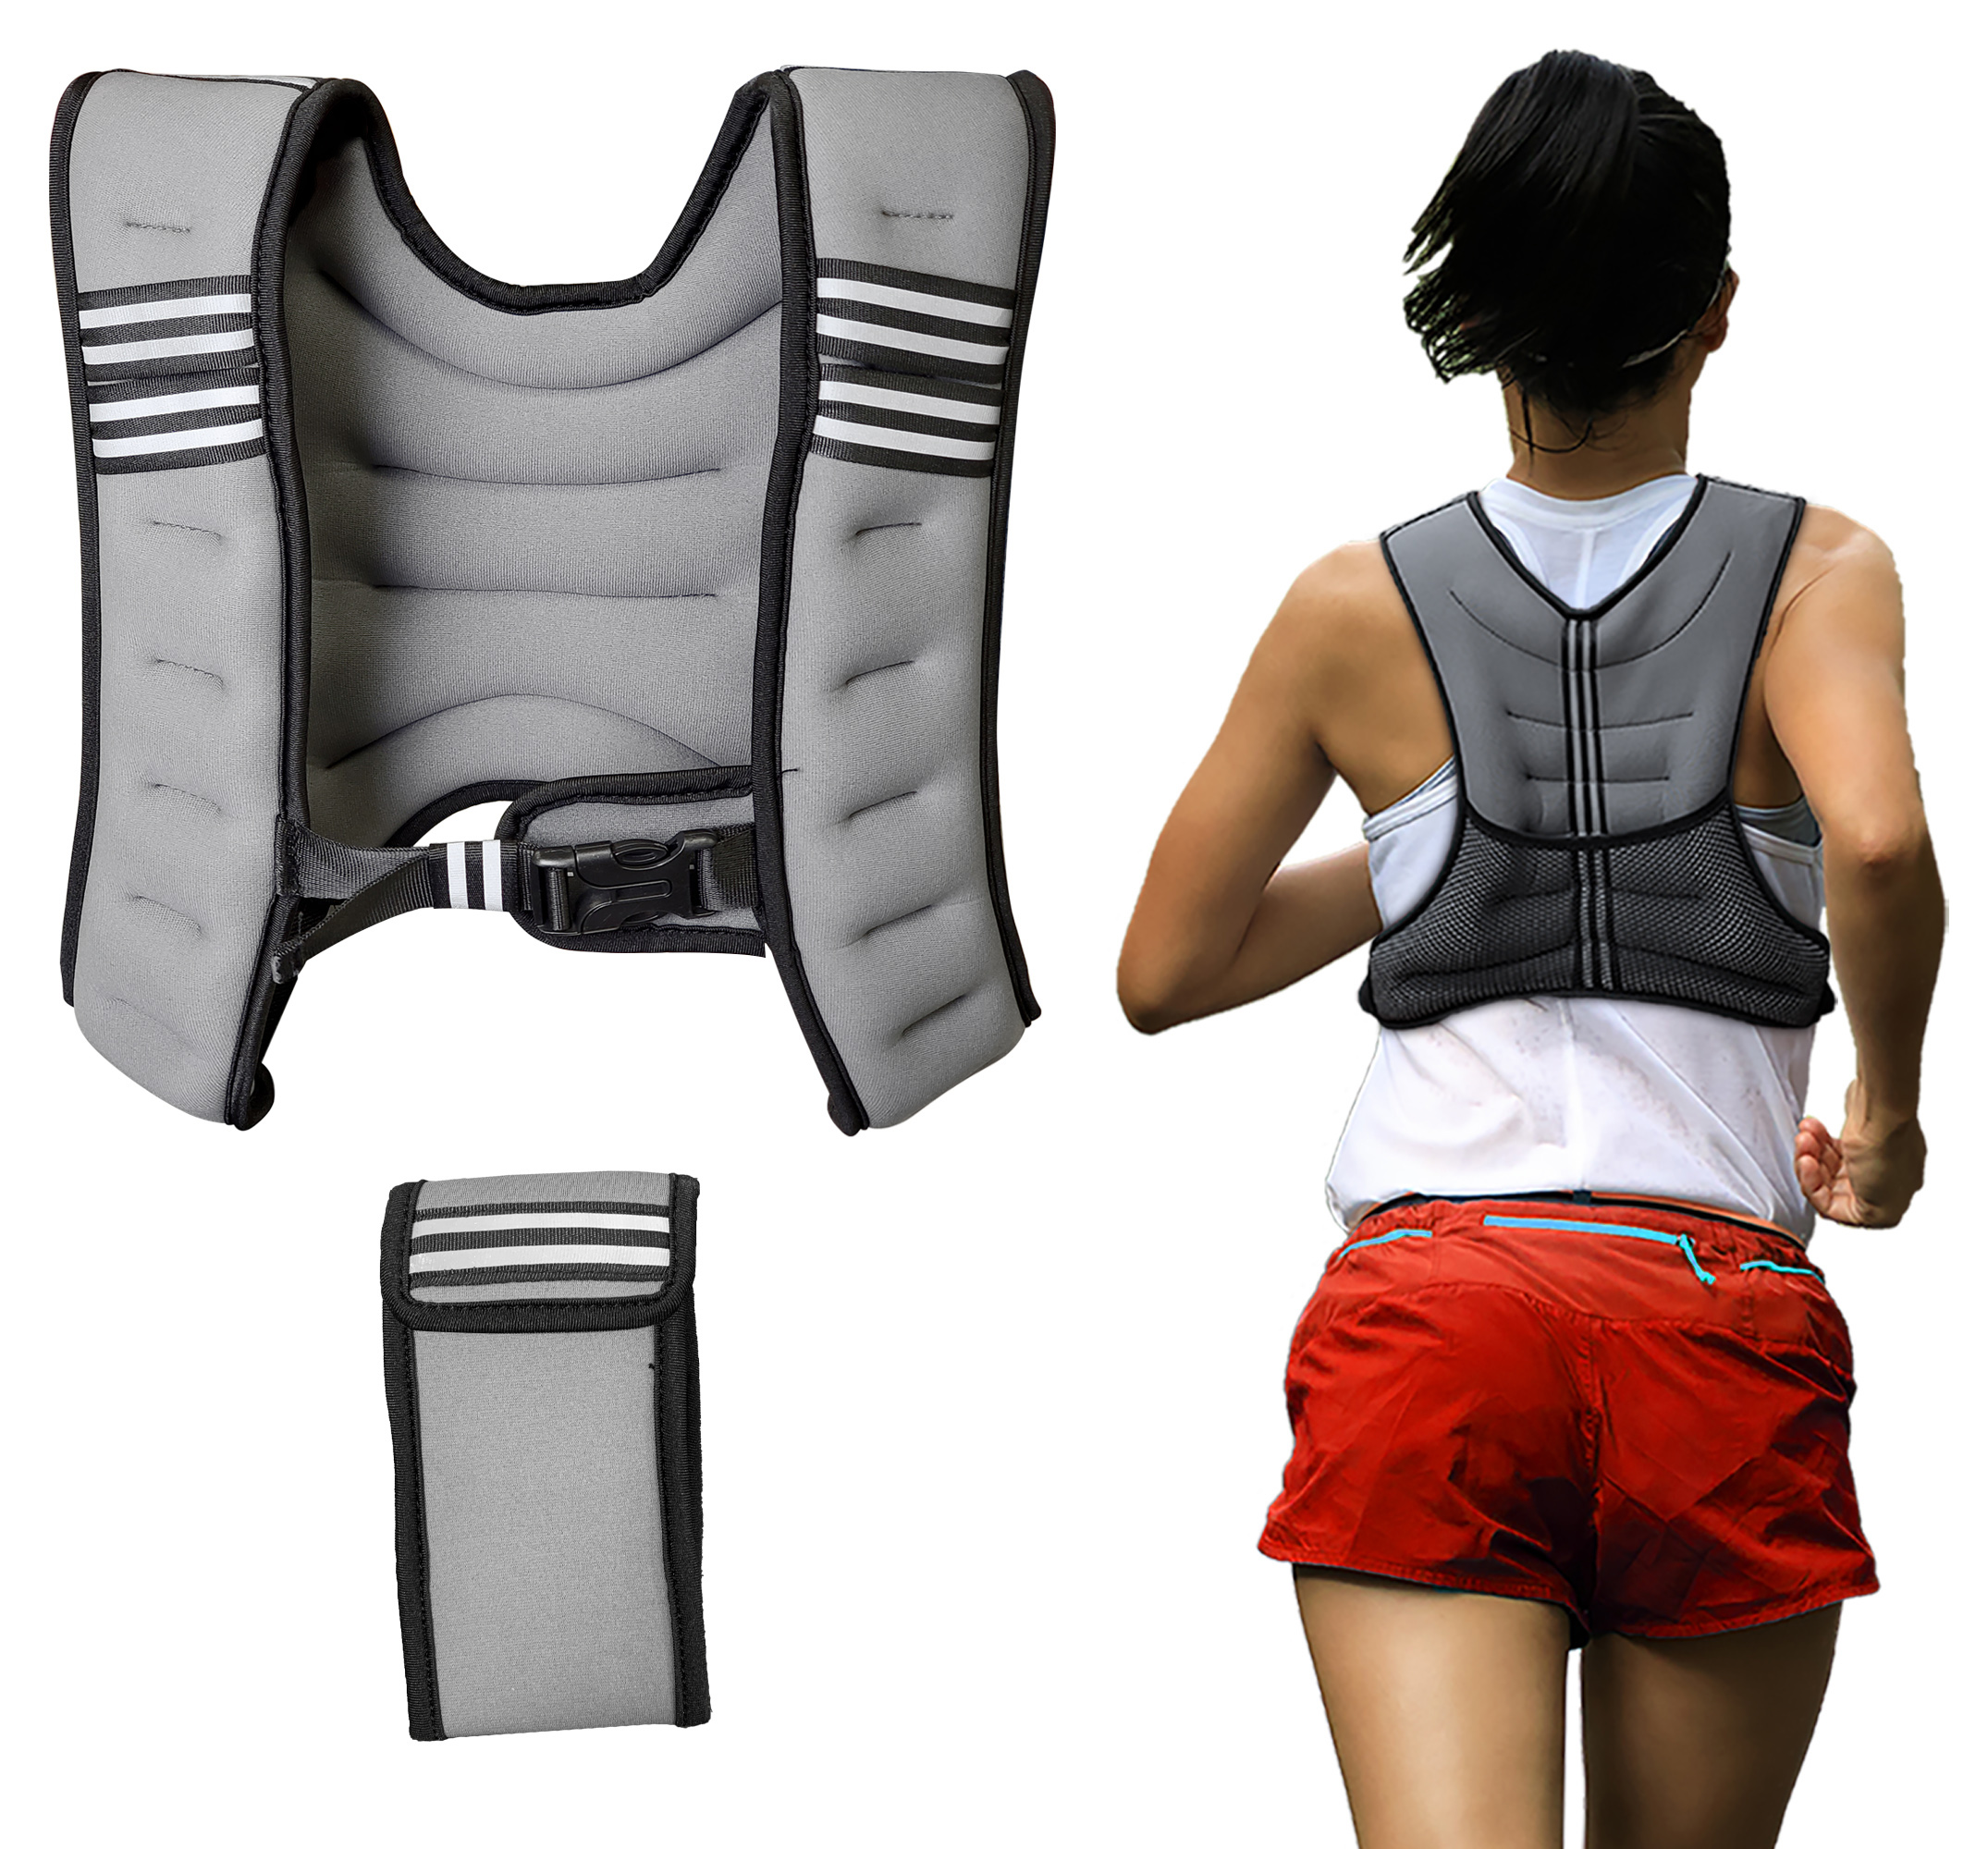 Weighted Exercise Vest Running Cardio Fitness with Weights 12 lbs for Women Men